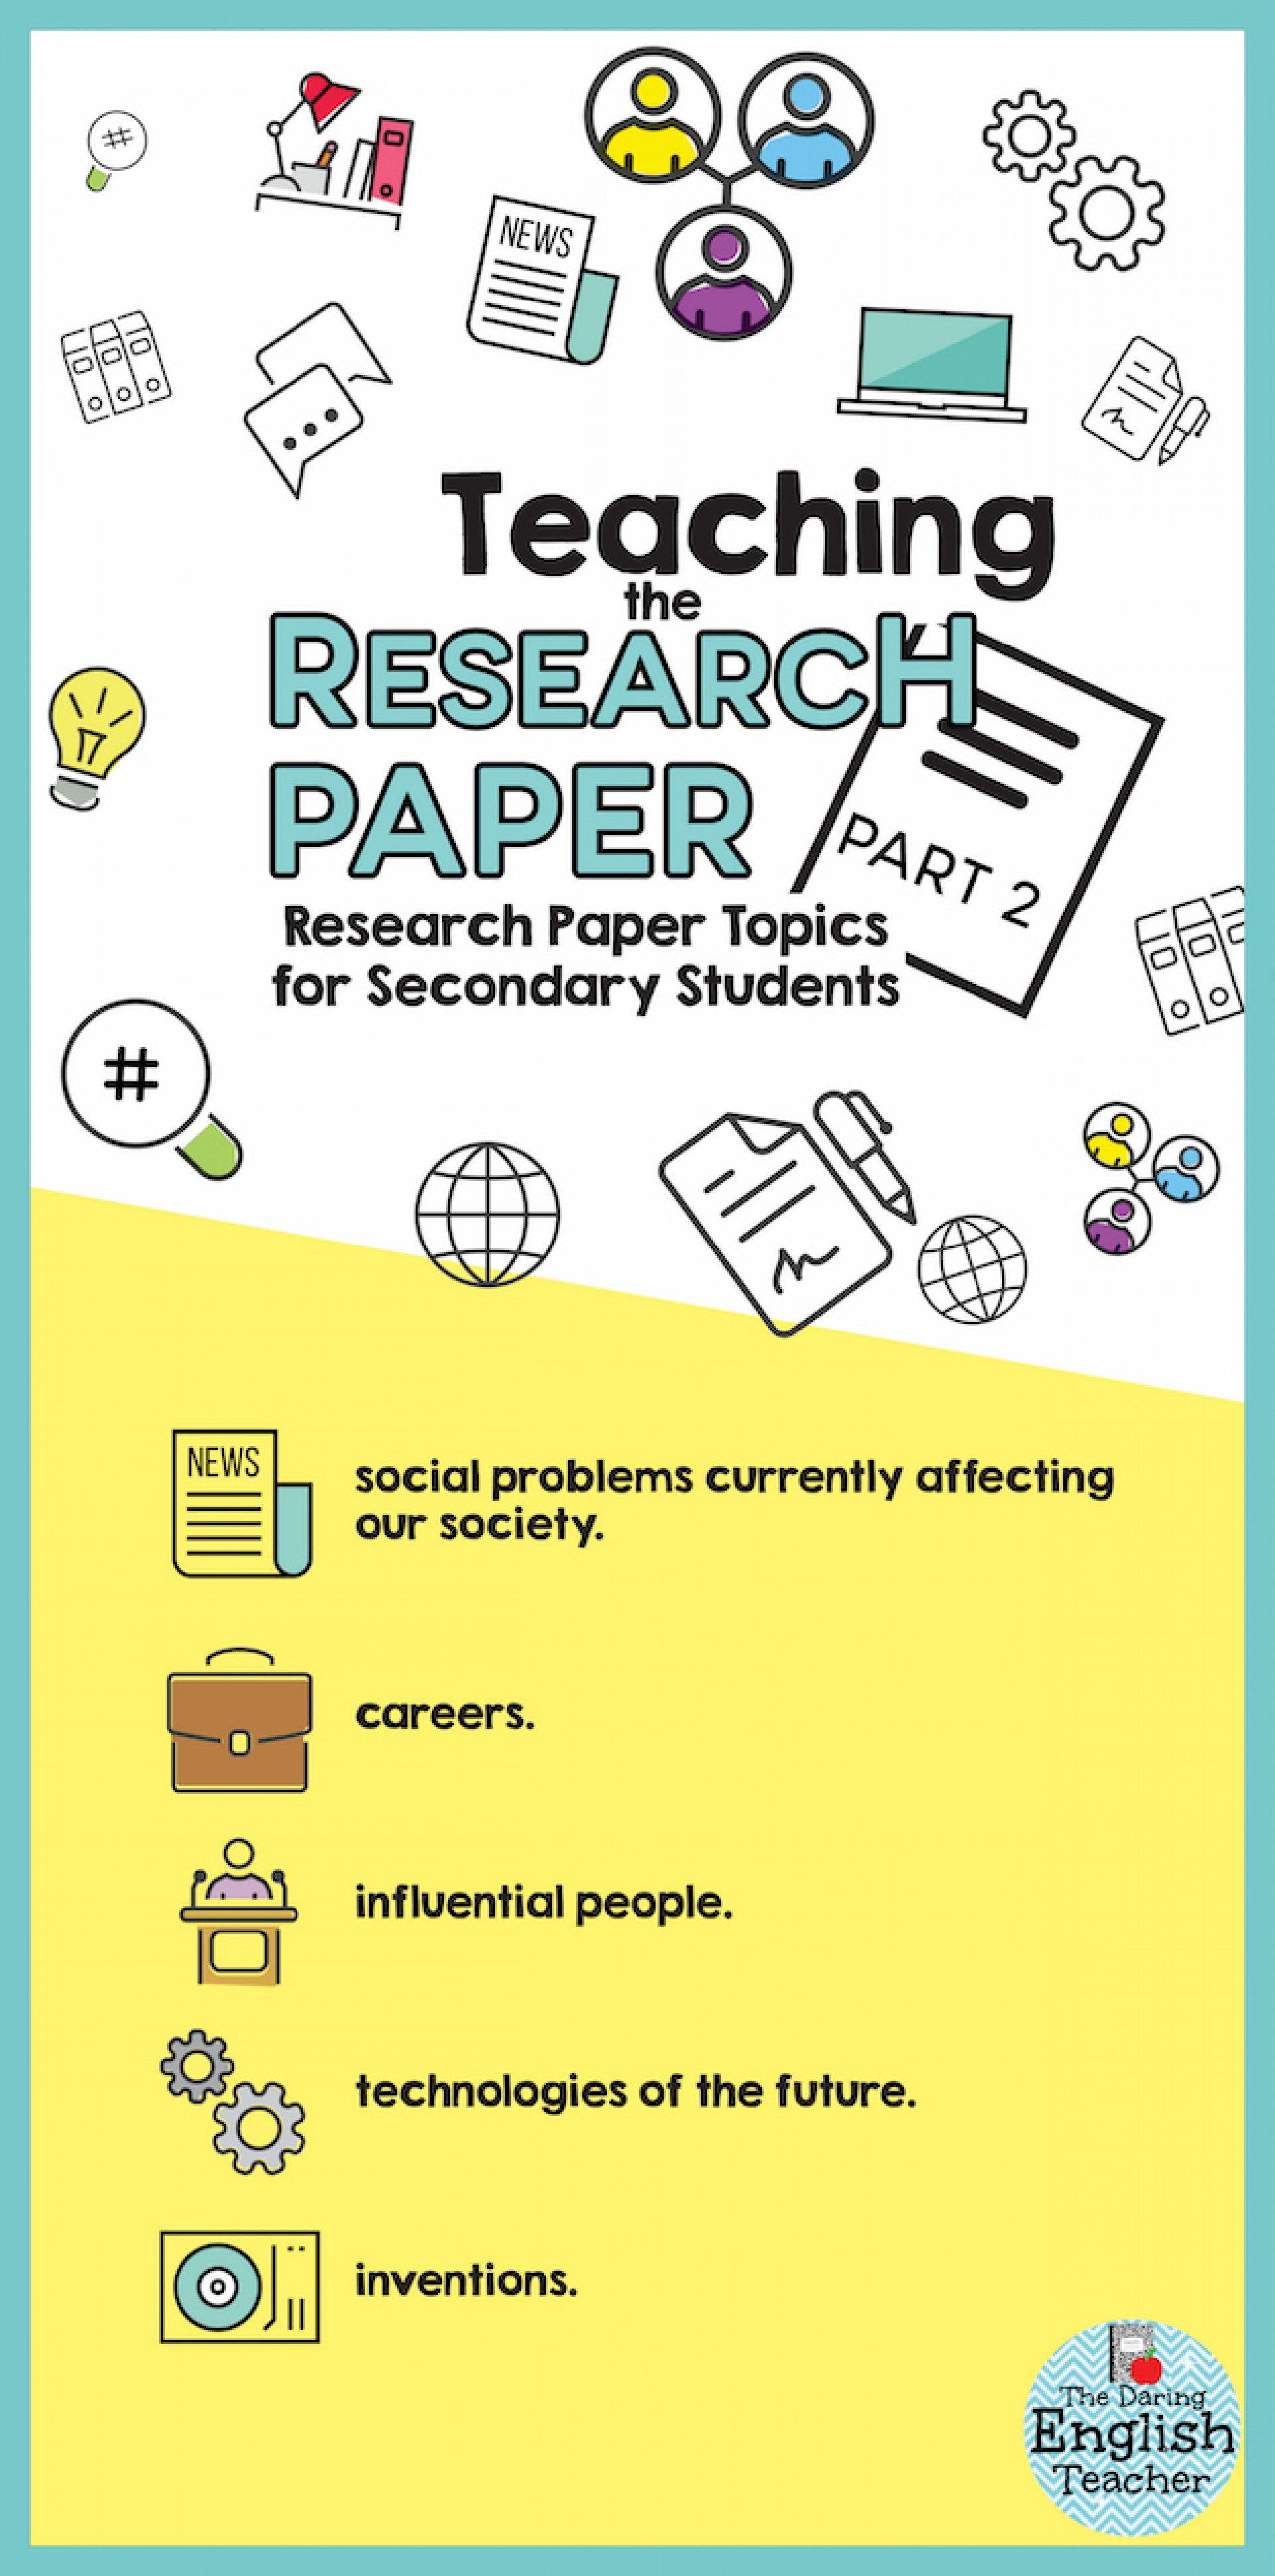 020 Infographic2bp22b2 Research Paper Topic For Unusual A Topics In Sociology On Frankenstein Education The Philippines 1920